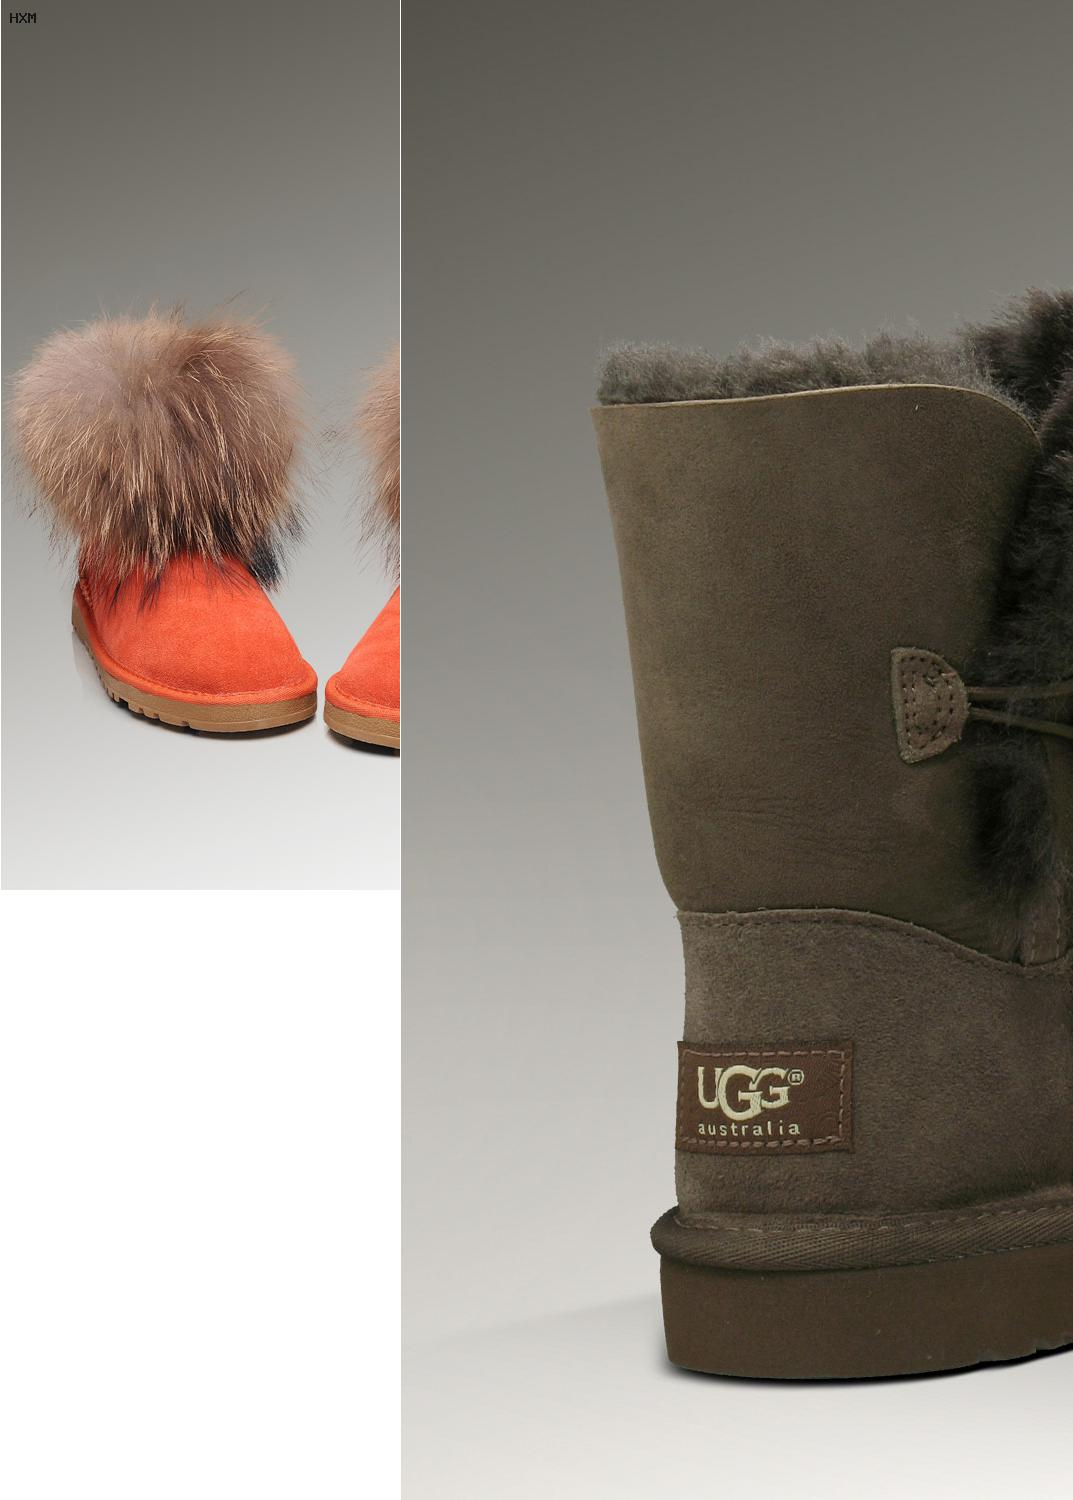 ugg boots usa prices new york Limit